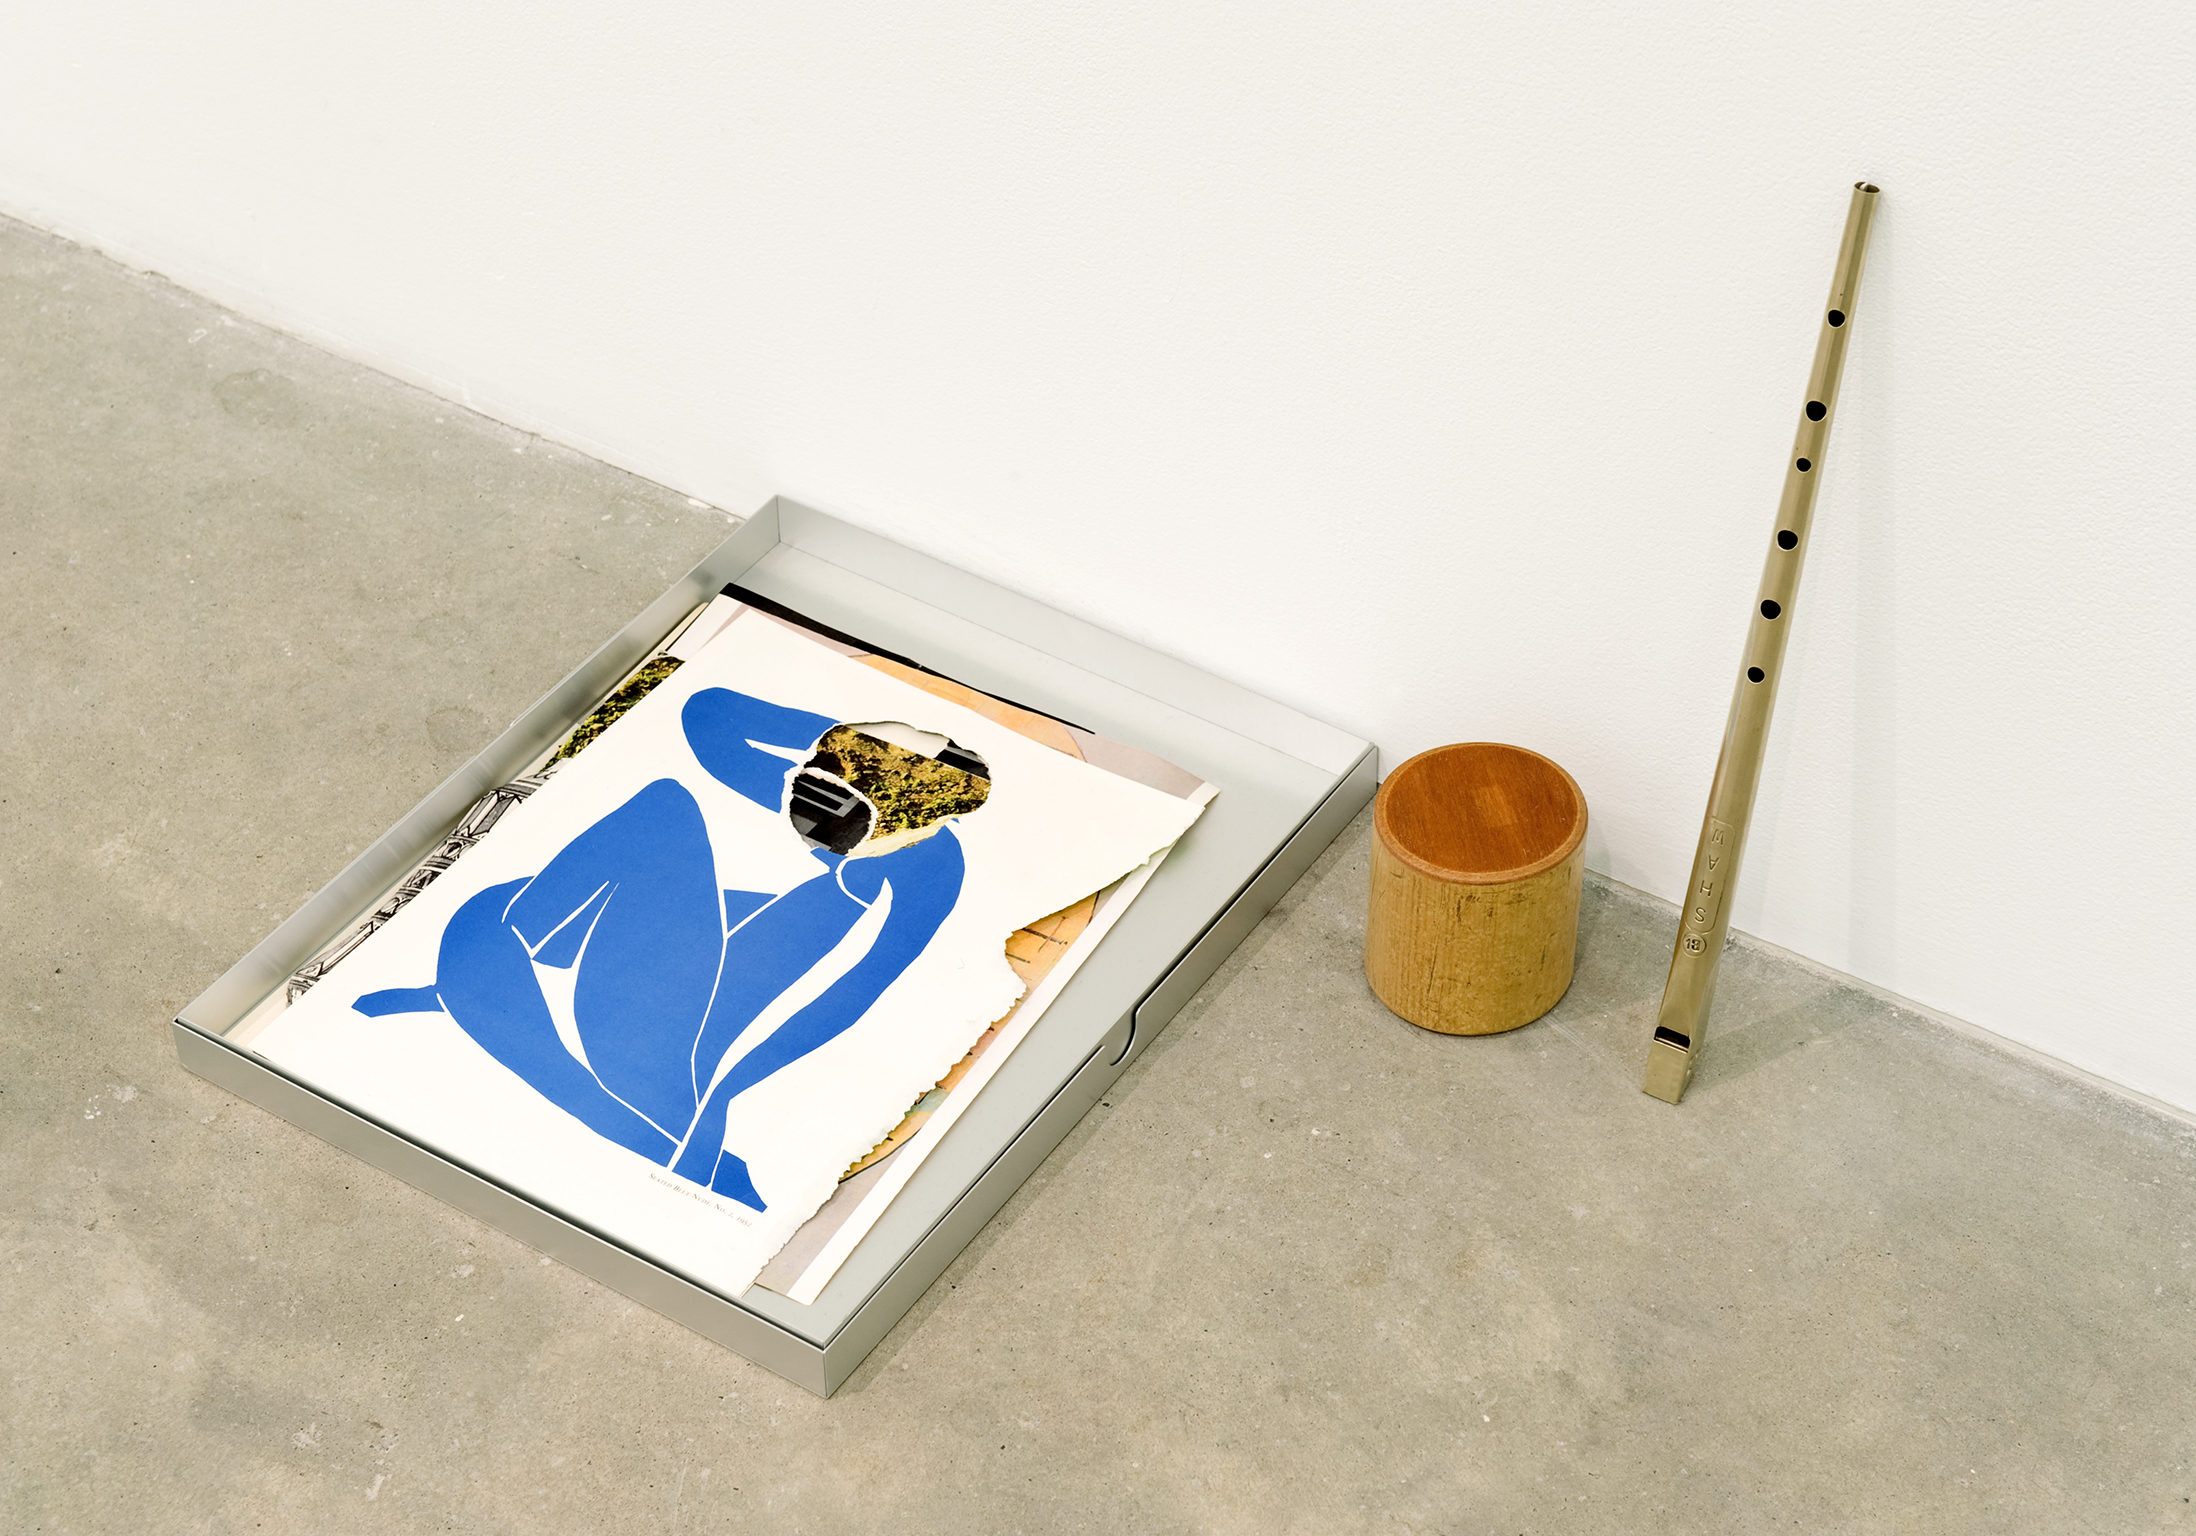 Geoffrey Farmer, Metal Will Stand Tall (A Single Image Is Not A Splendor) (detail), 2011, found metal, book cut outs, metal box, musical instruments, dimensions variable by